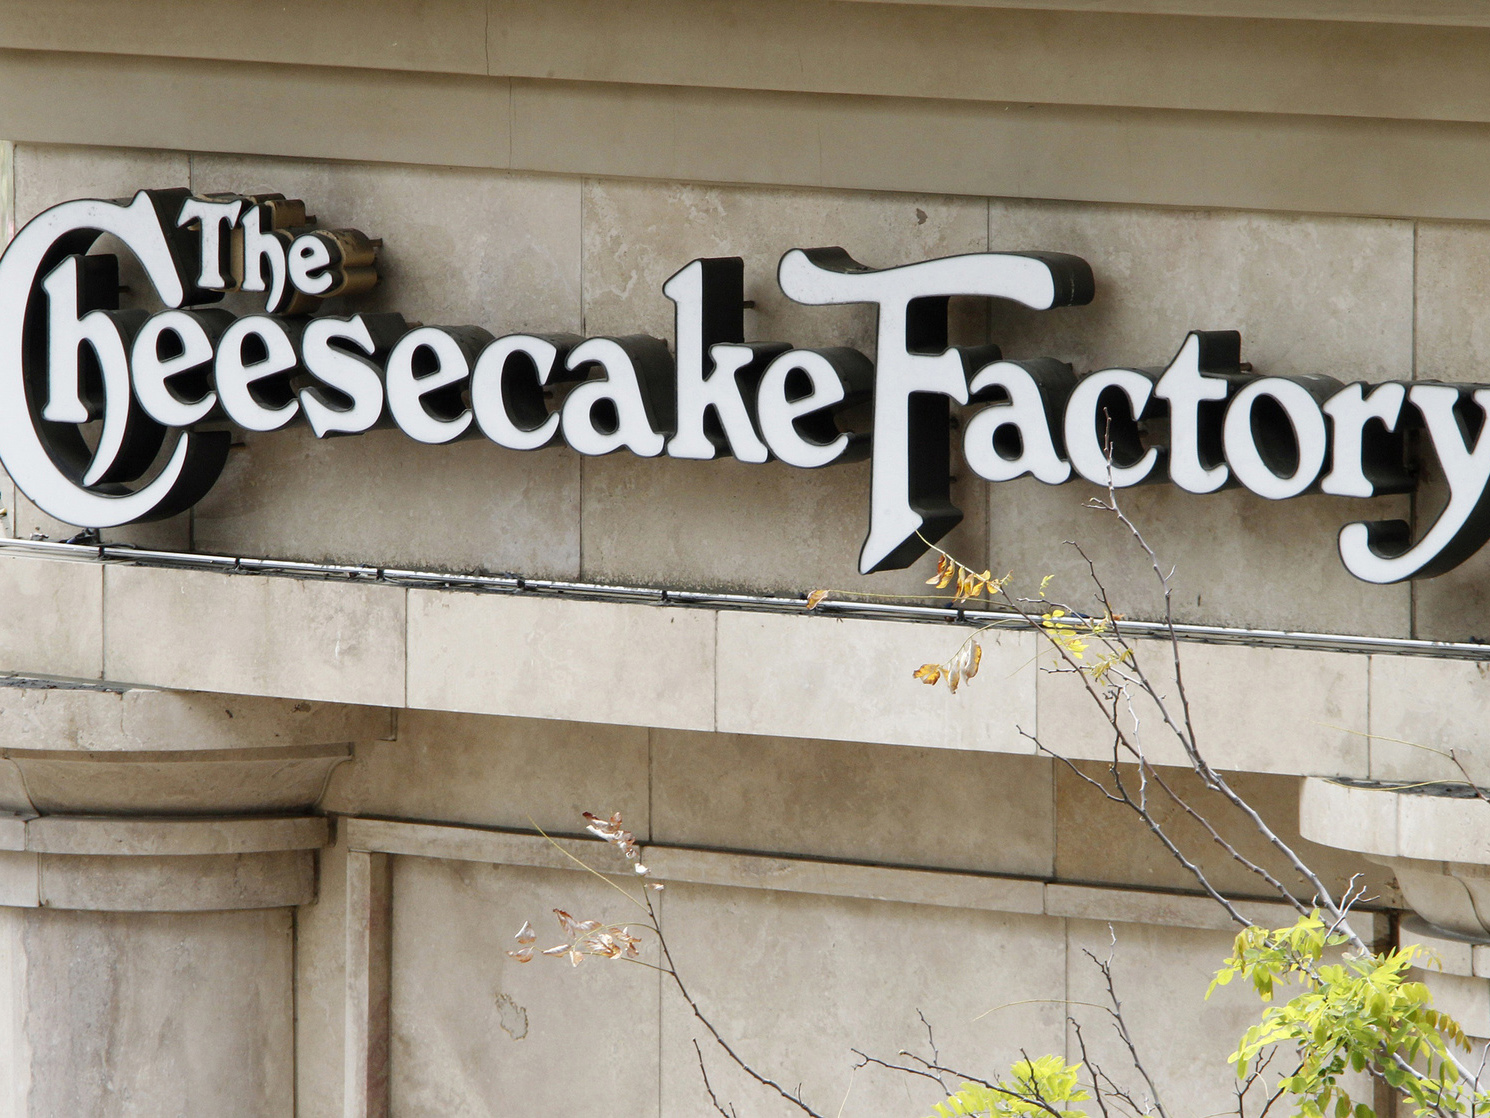 The 5 Healthiest Options on The Cheesecake Factory's SkinnyLicious Menu—Plus 3 You Should Avoid